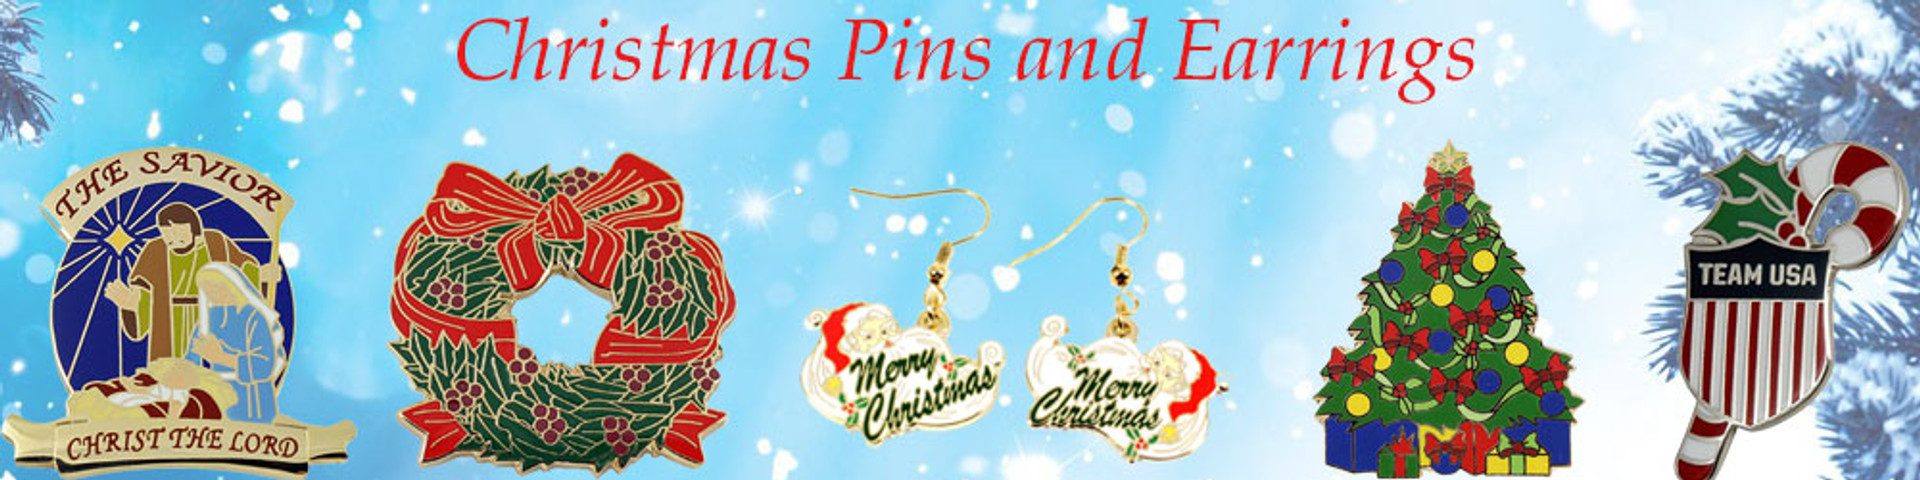 Christmas pins and earrings